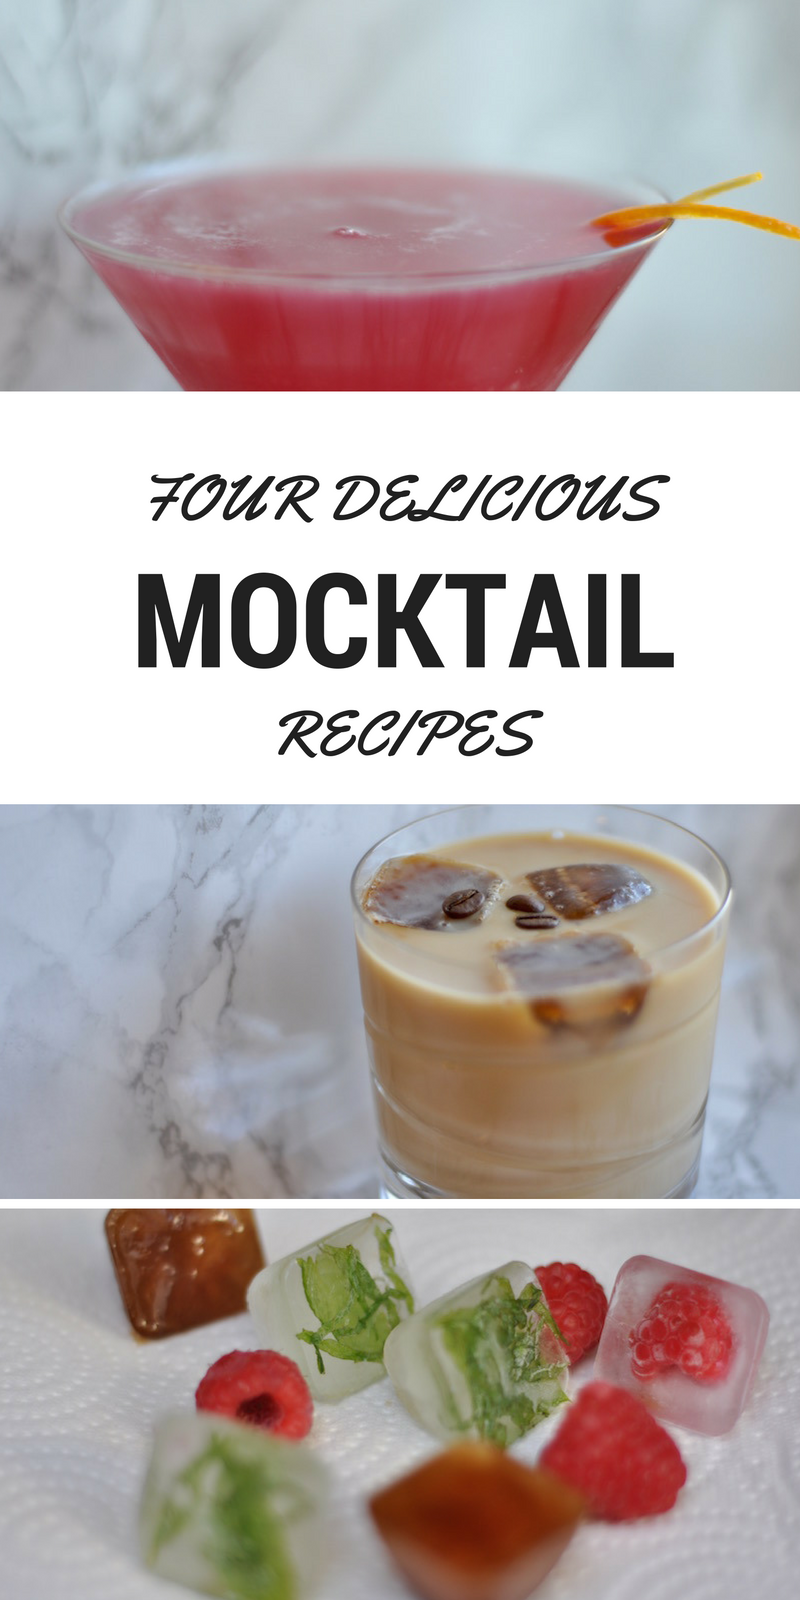 Four Money-Saving Mocktail Recipes